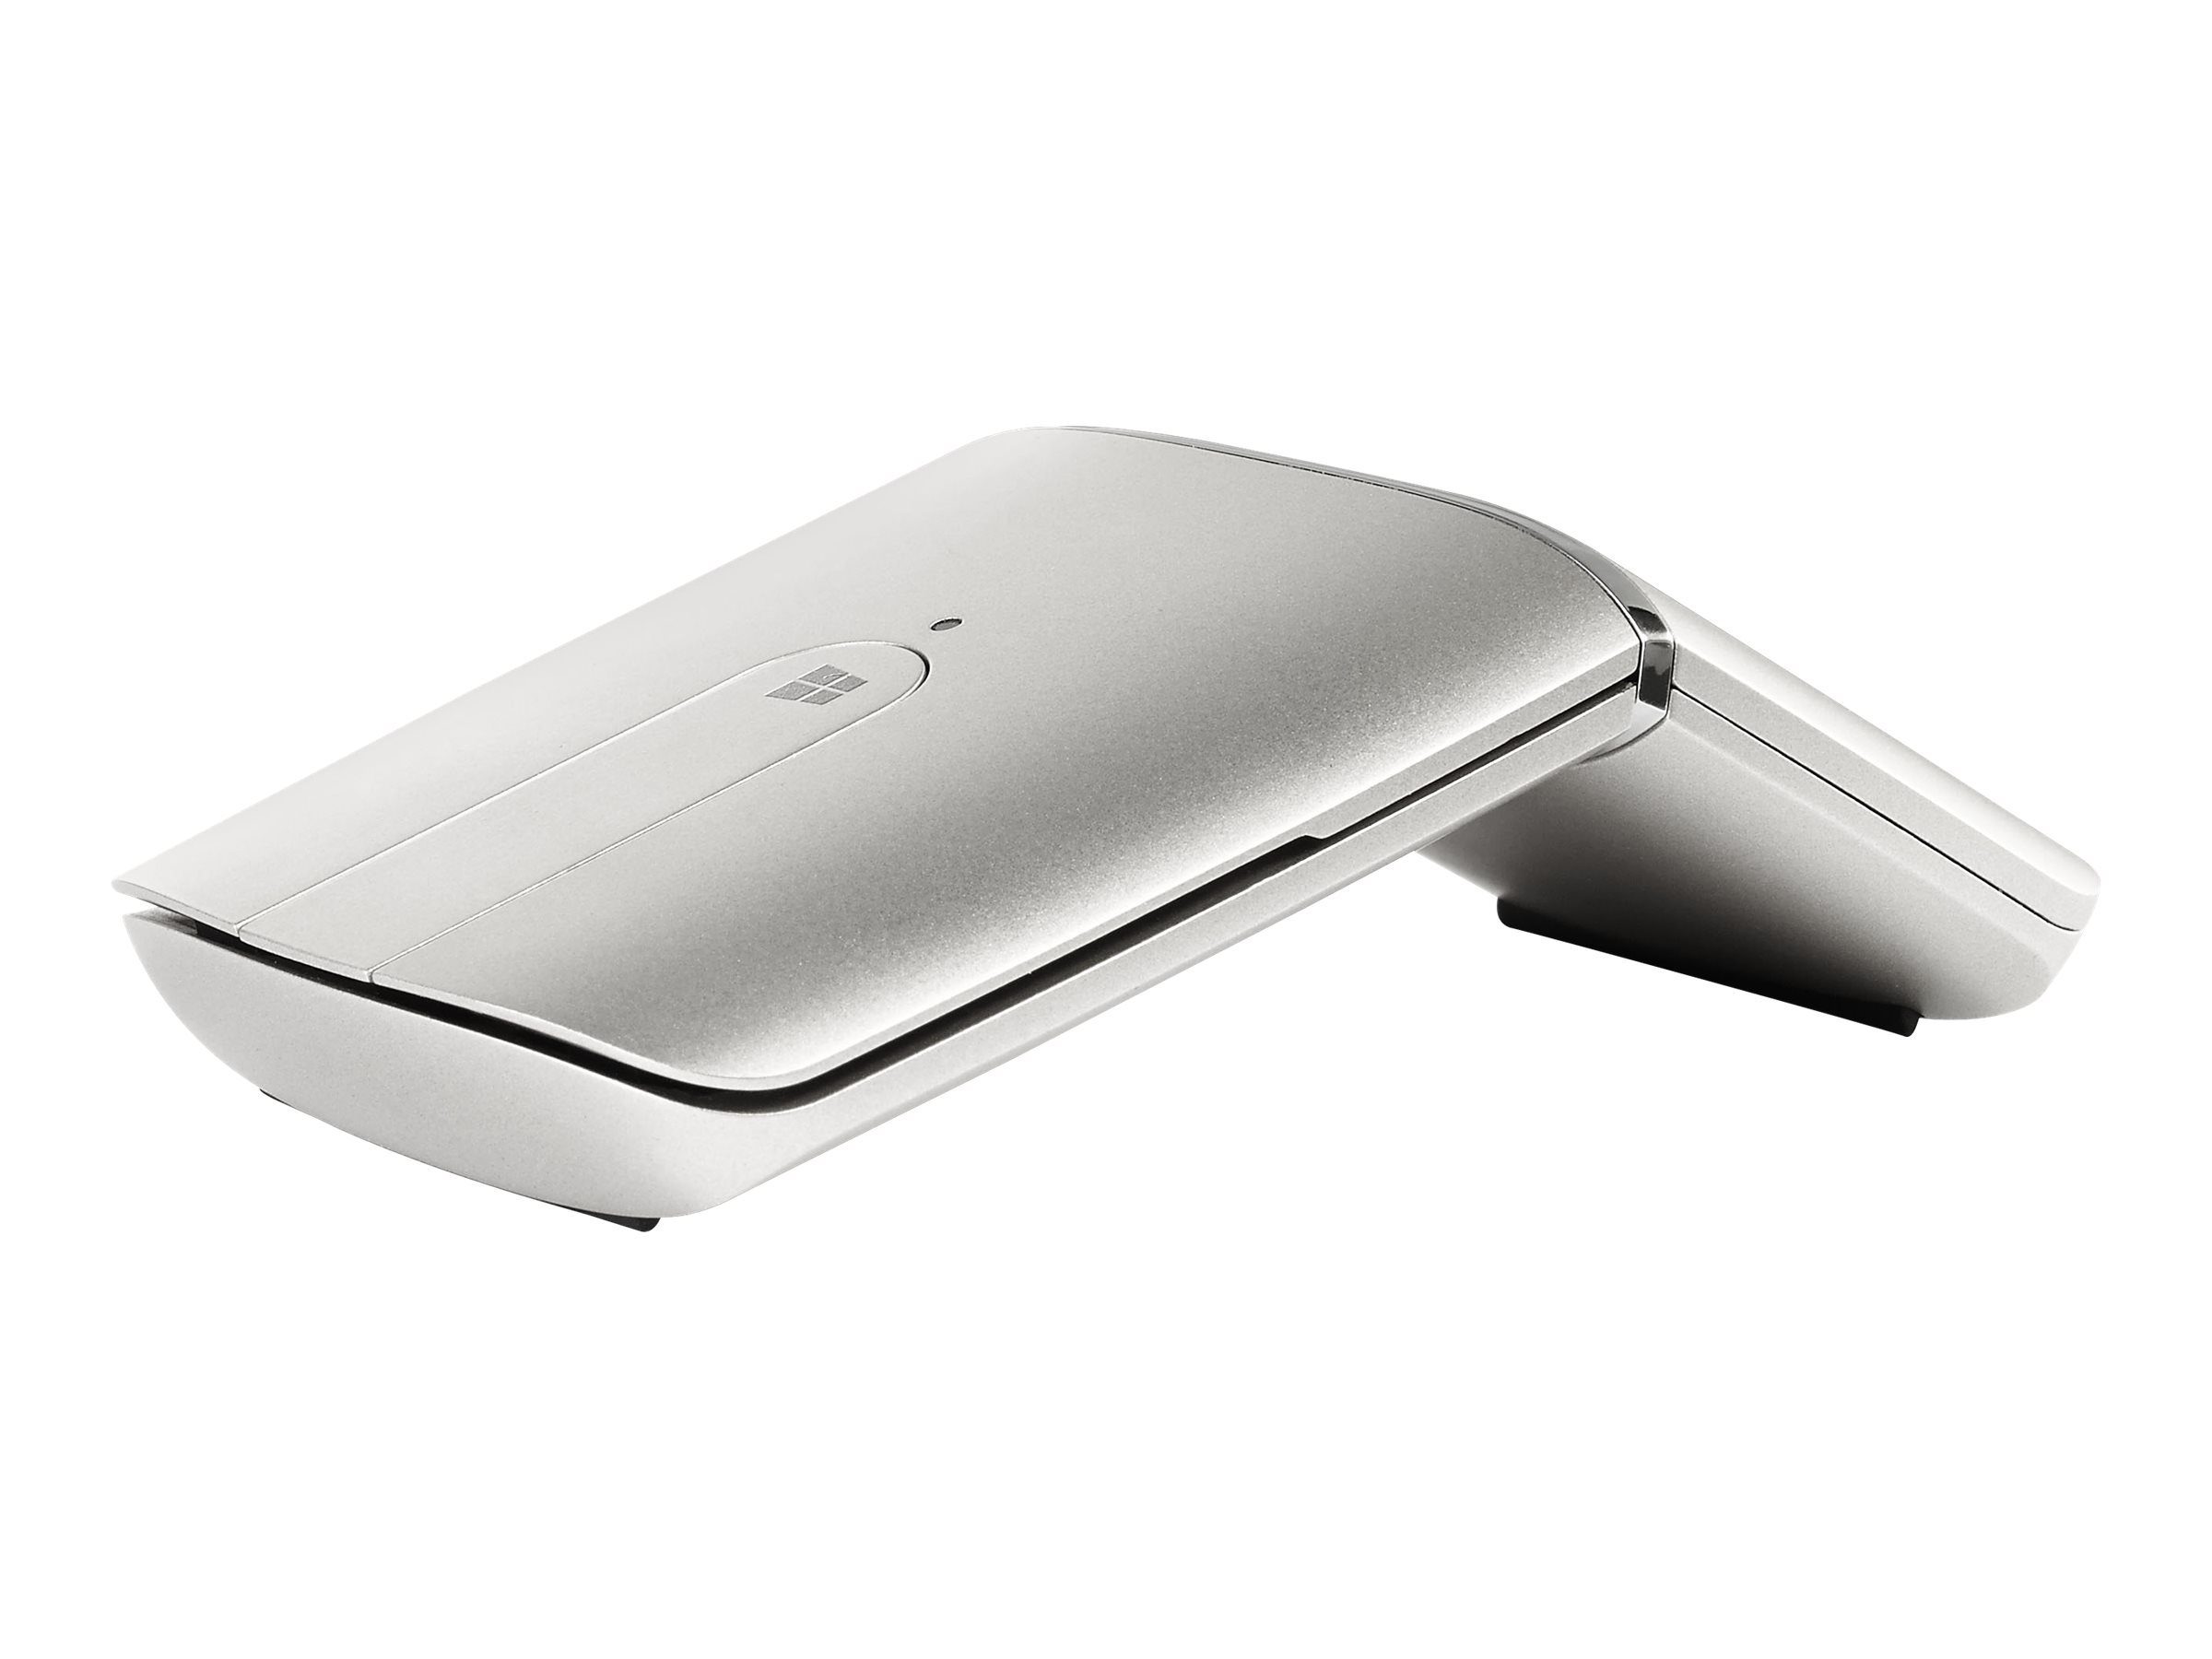 Lenovo Yoga Mouse - mouse / remote control - 2.4 GHz, Bluetooth 4.0 - silver